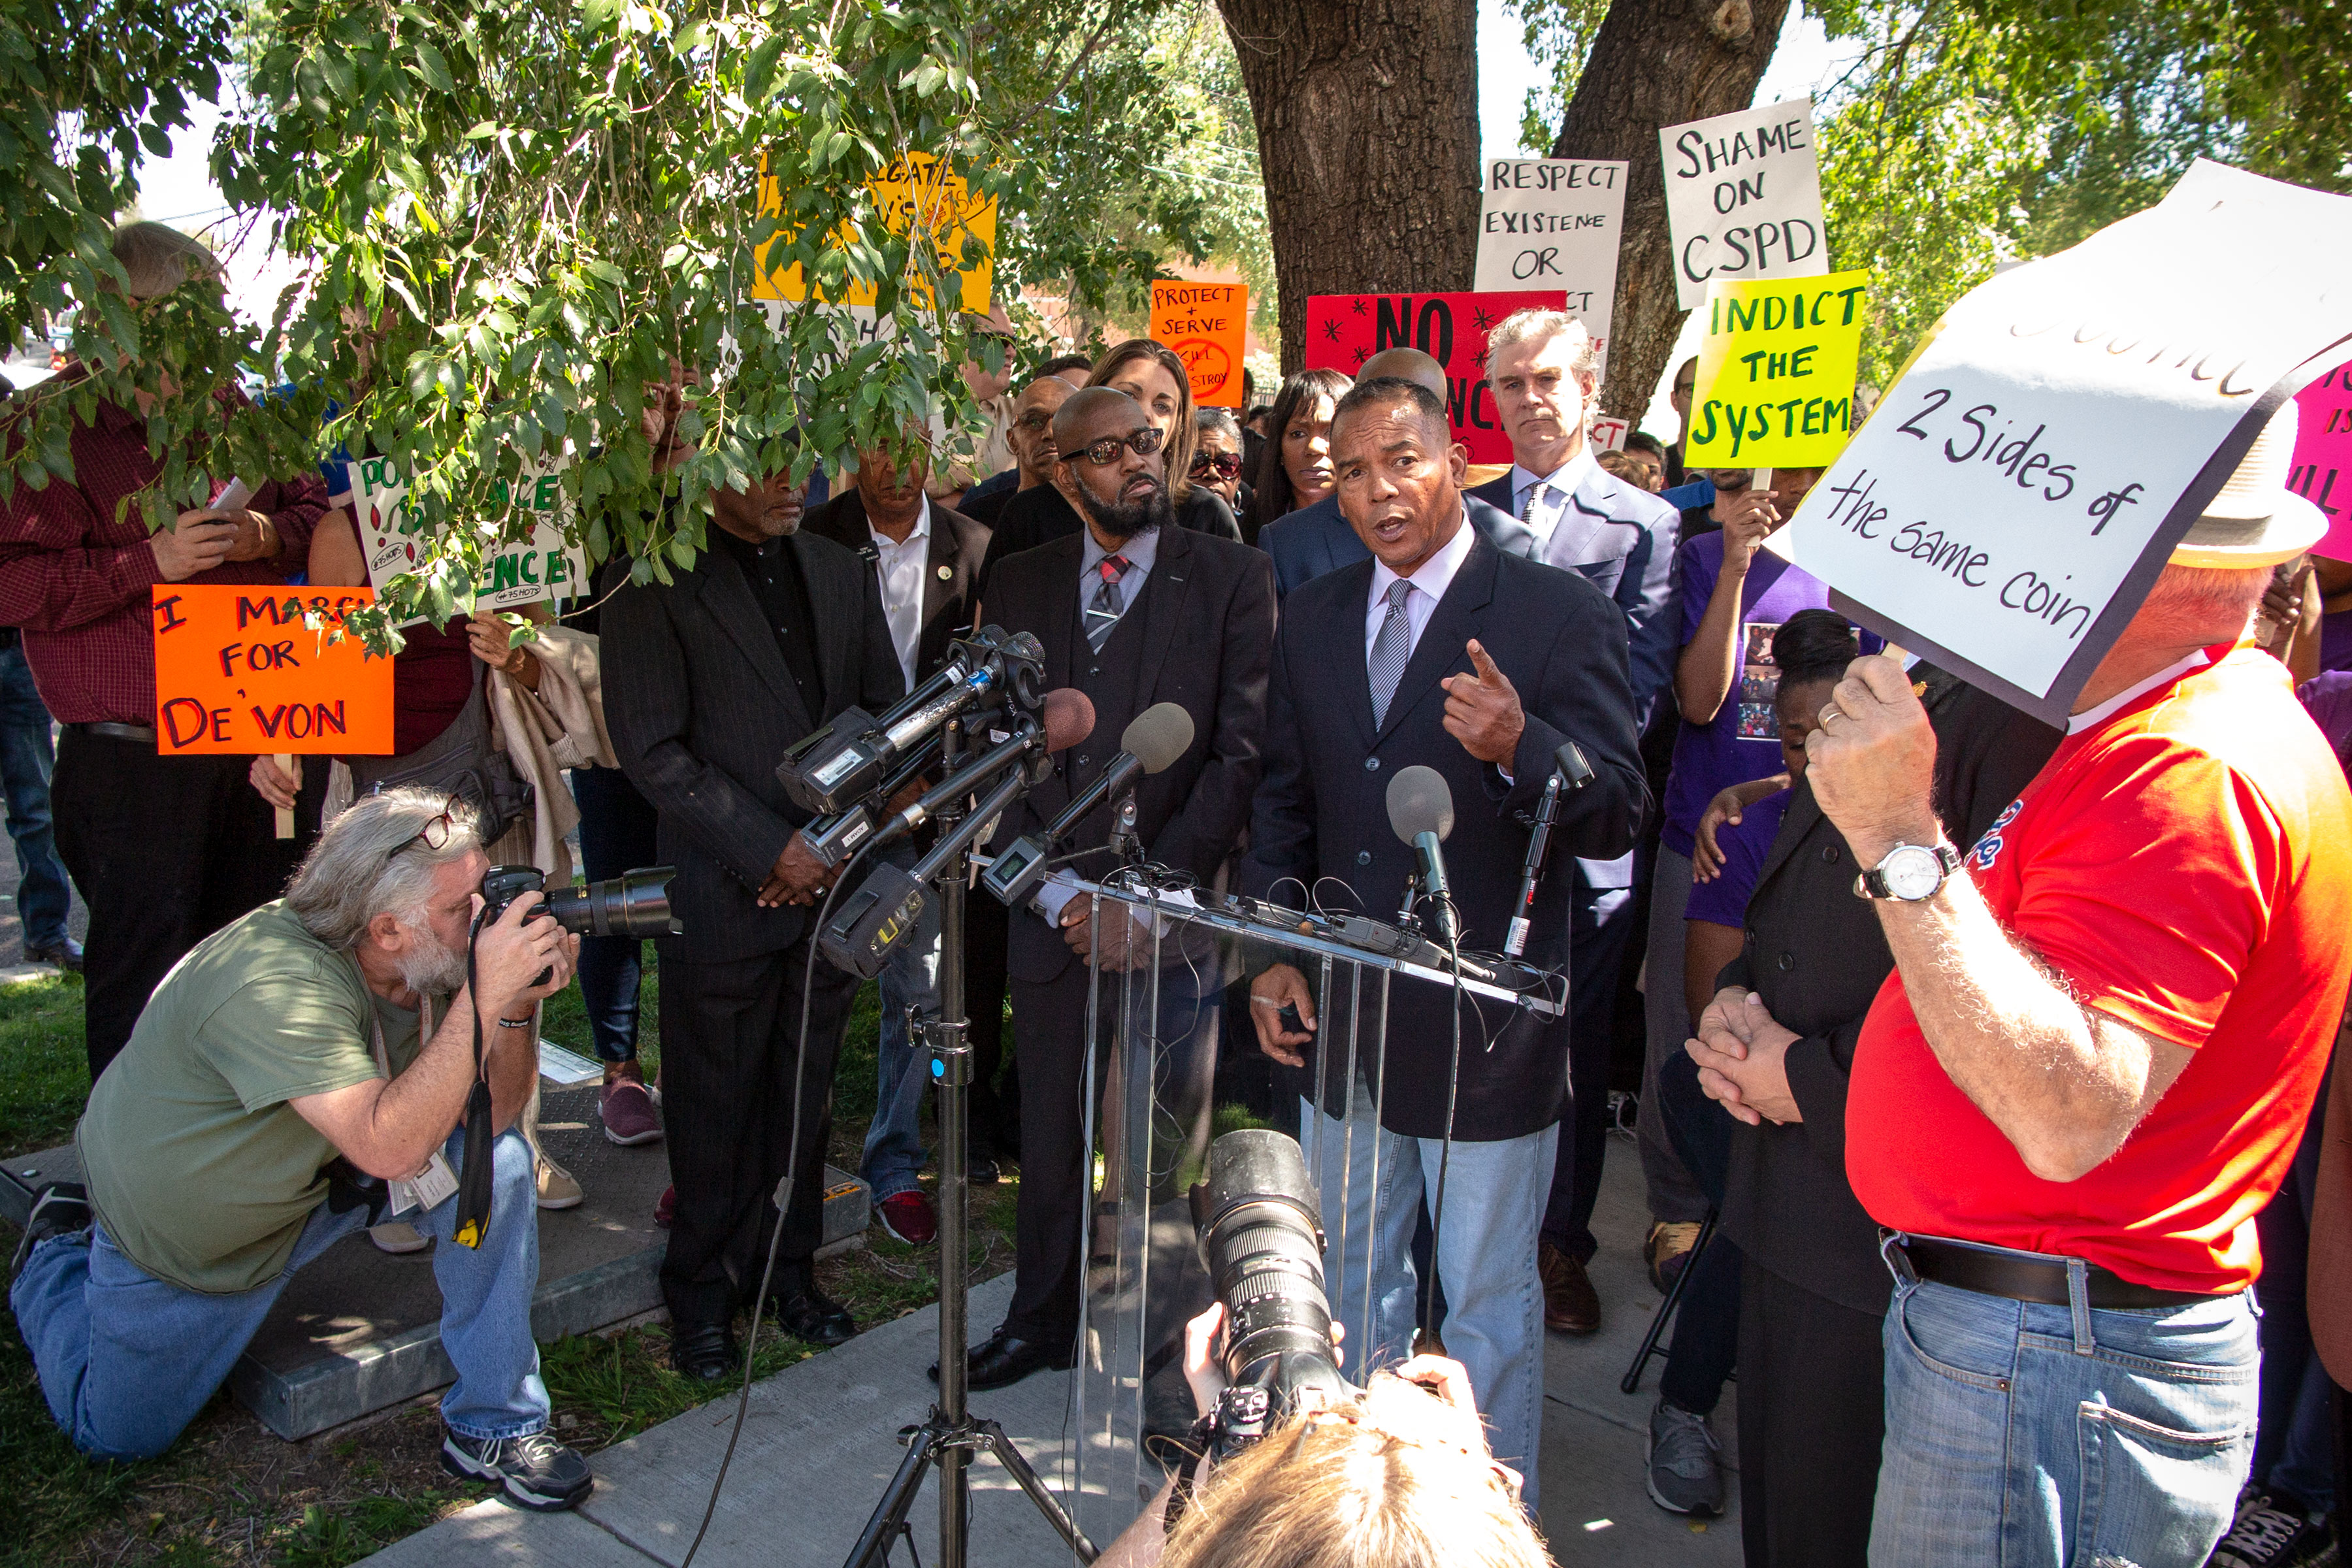 Reverend Promise Lee speaks at a press conference calling for an independent investigation into the death of De'Von Bailey, who was killed by Colorado Springs Police, outside of the department's operations center on Tue., Aug. 13, 2019.